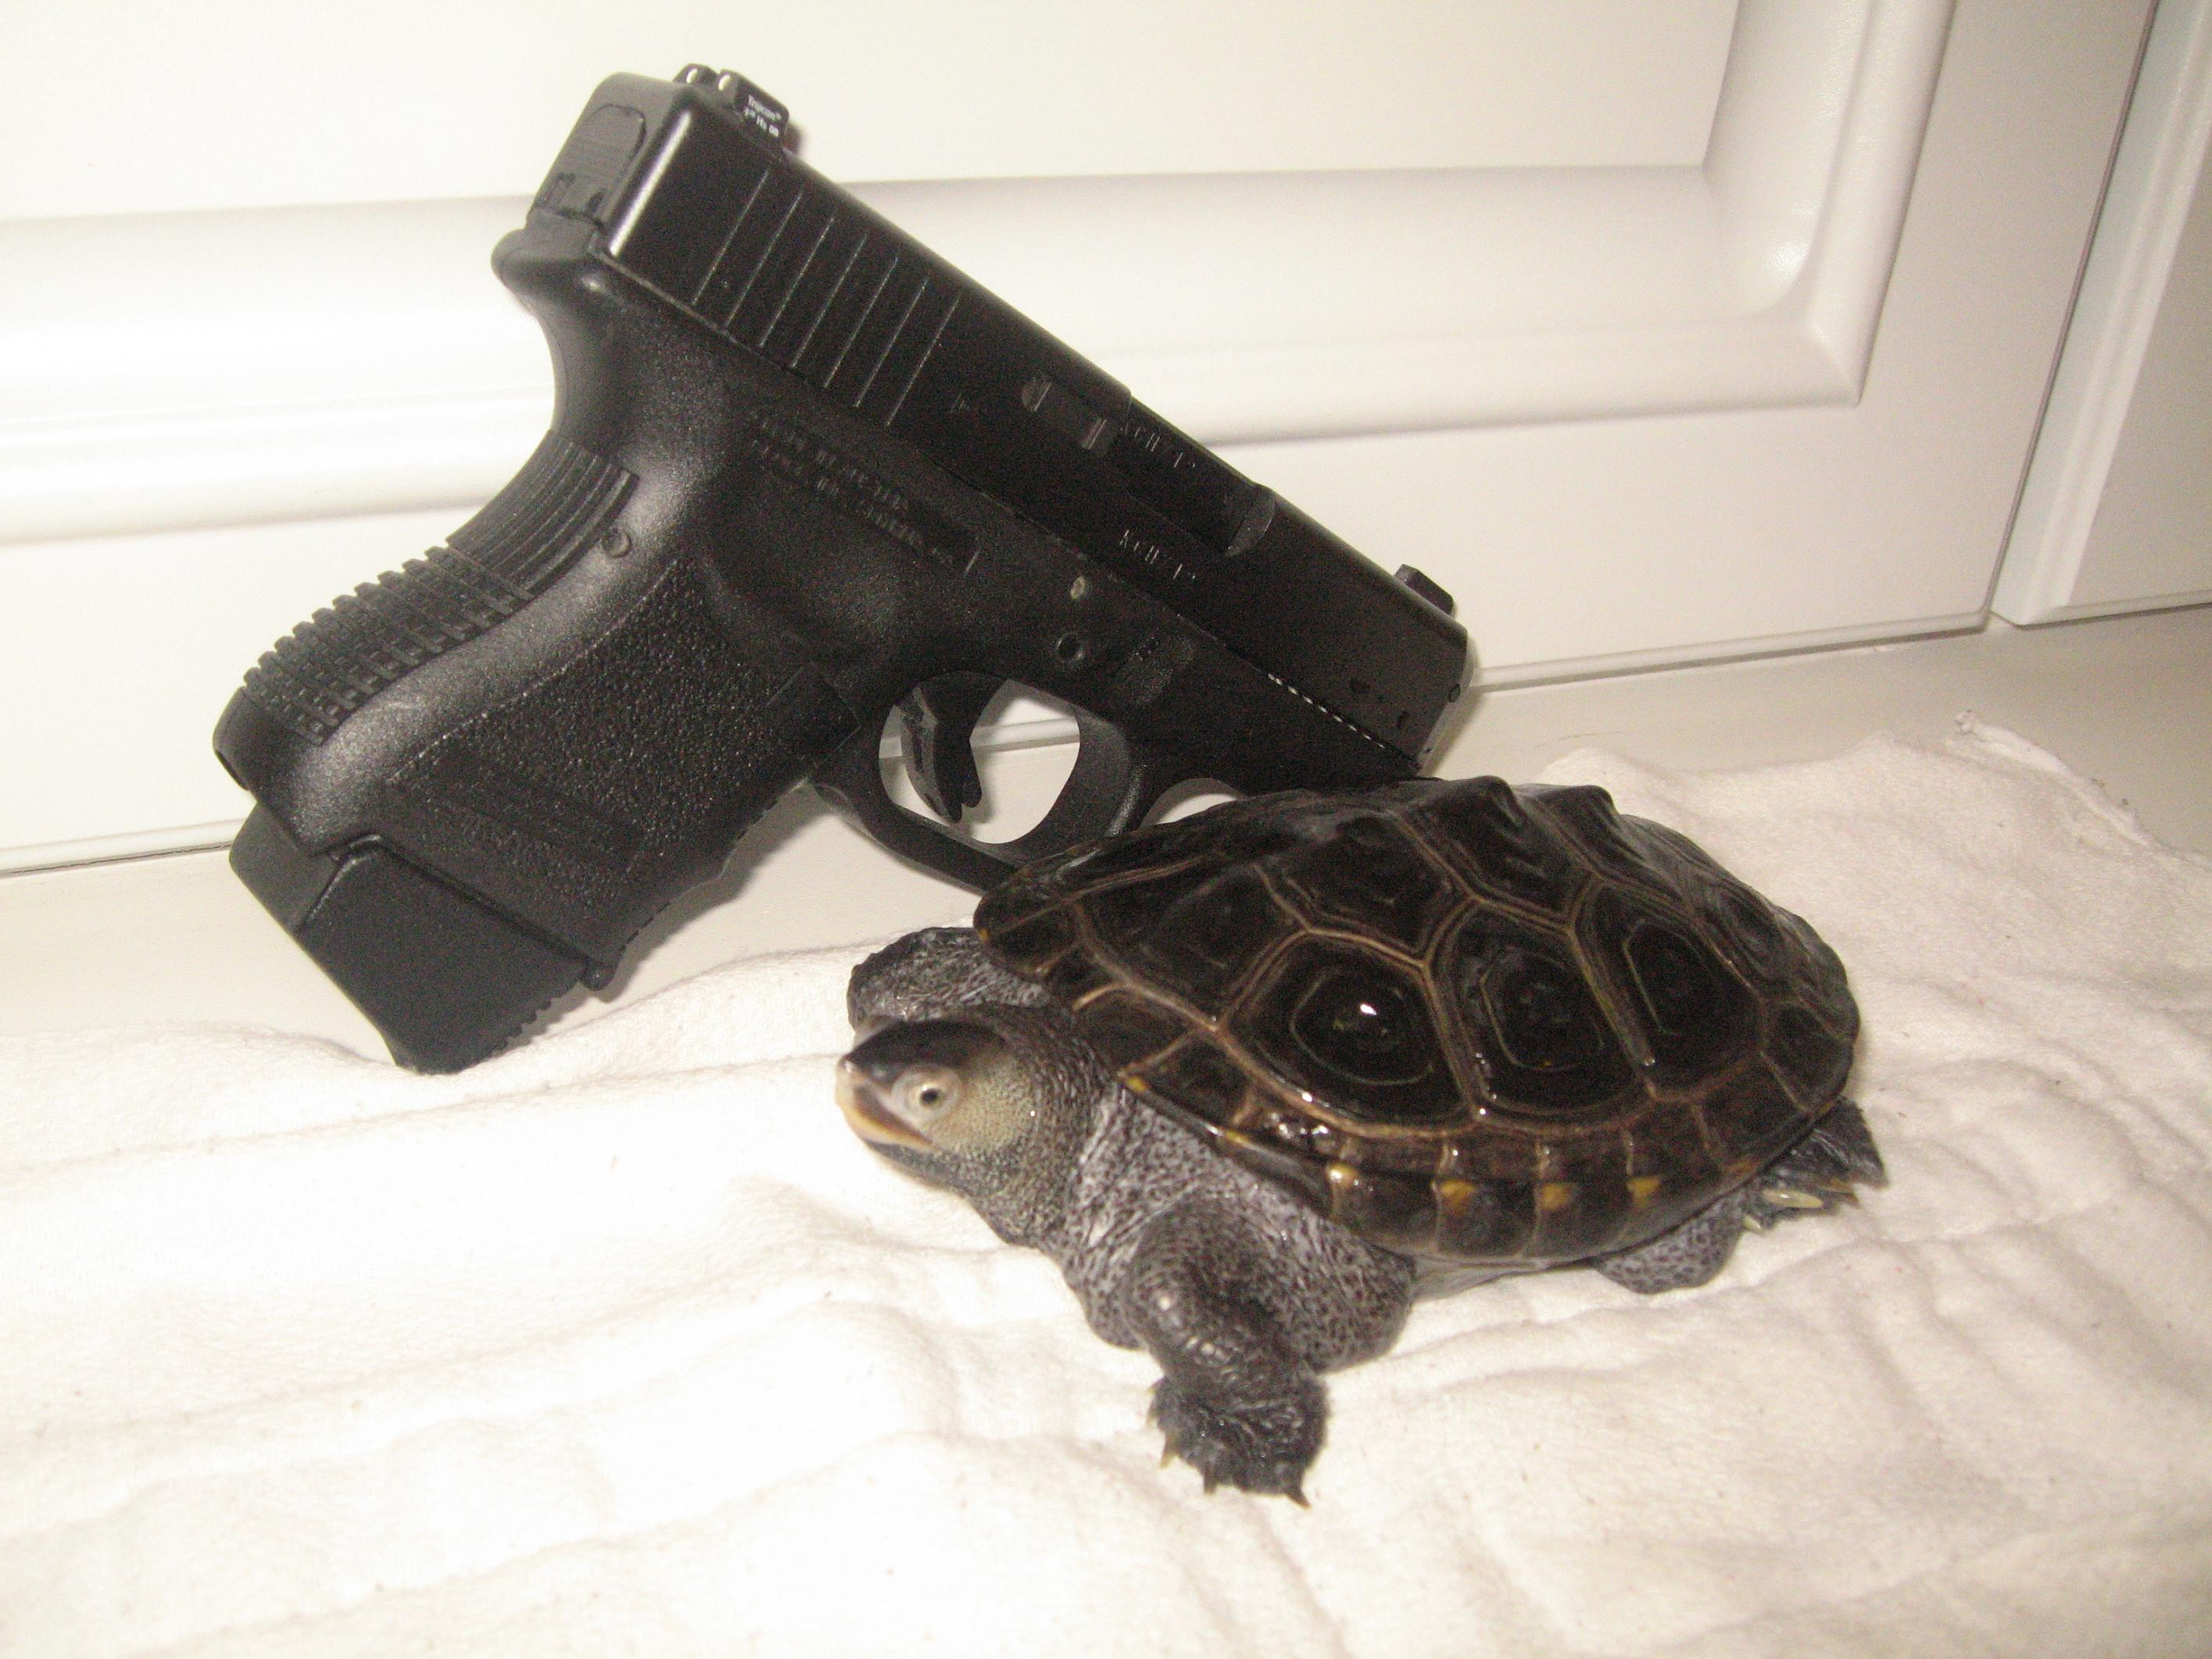 Let's see pics of the Turtle that guards your front door...-turtle-012.jpg